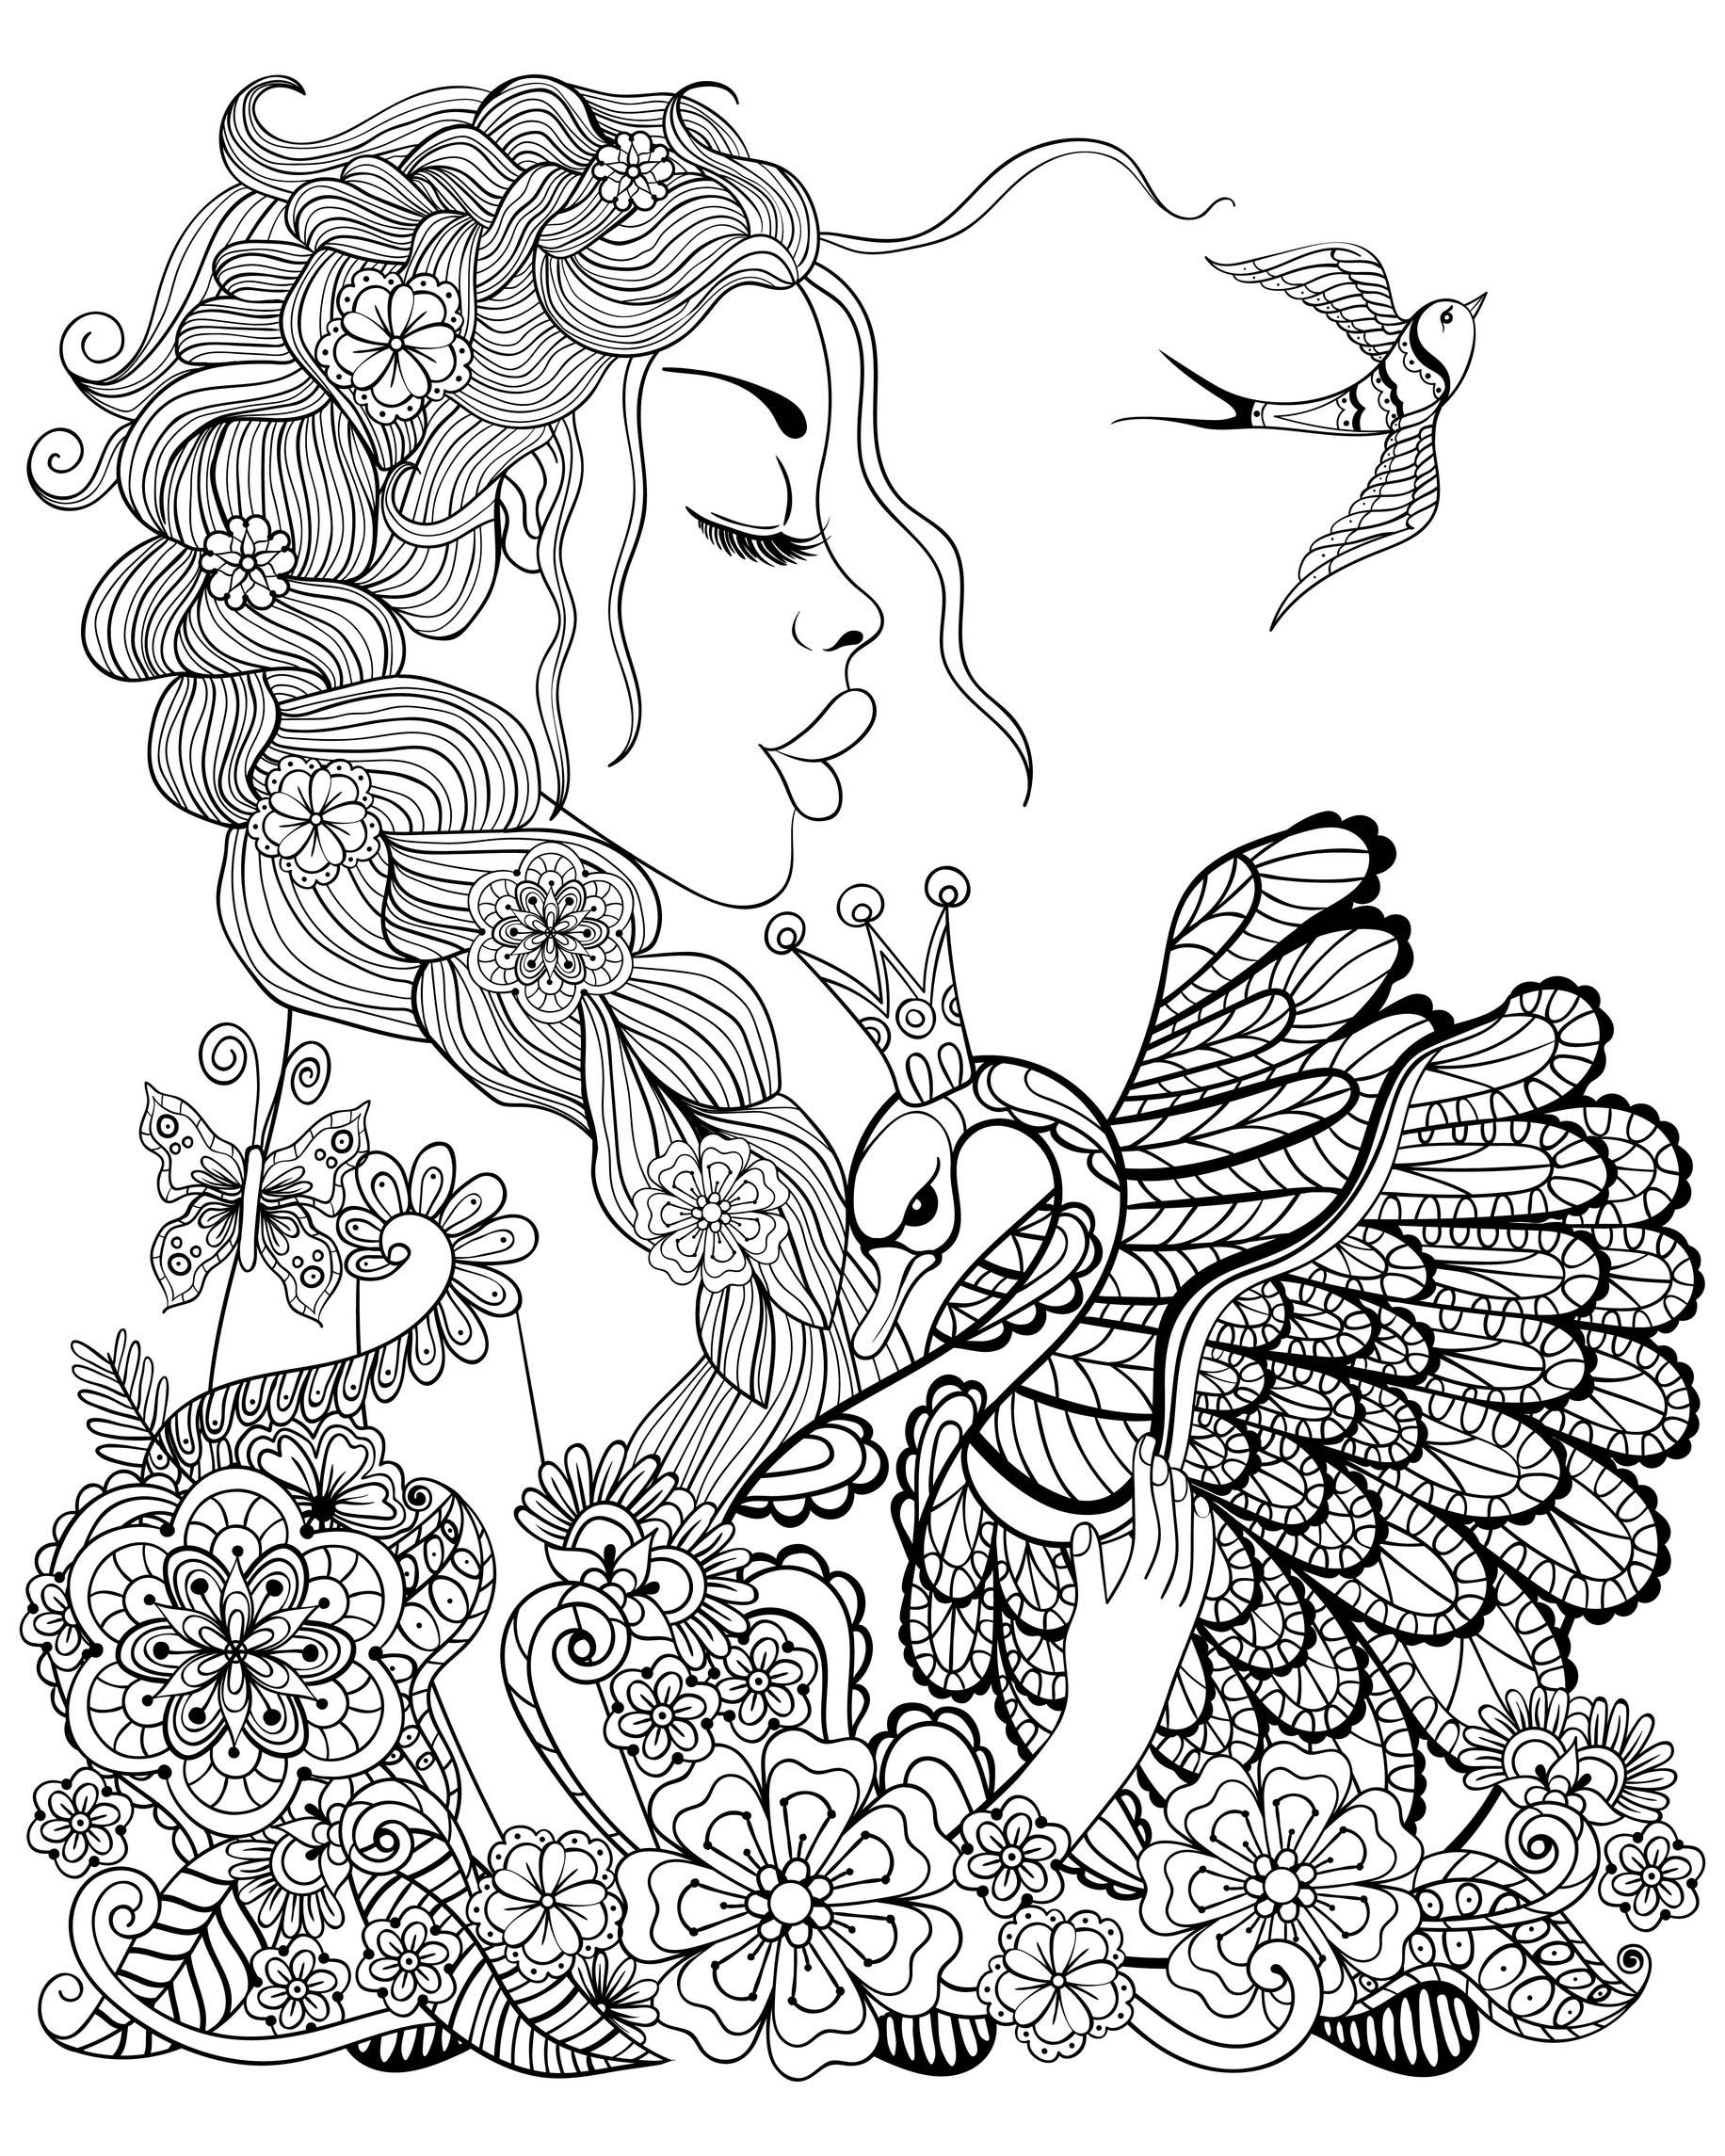 Simple Birds Coloring Page For Children